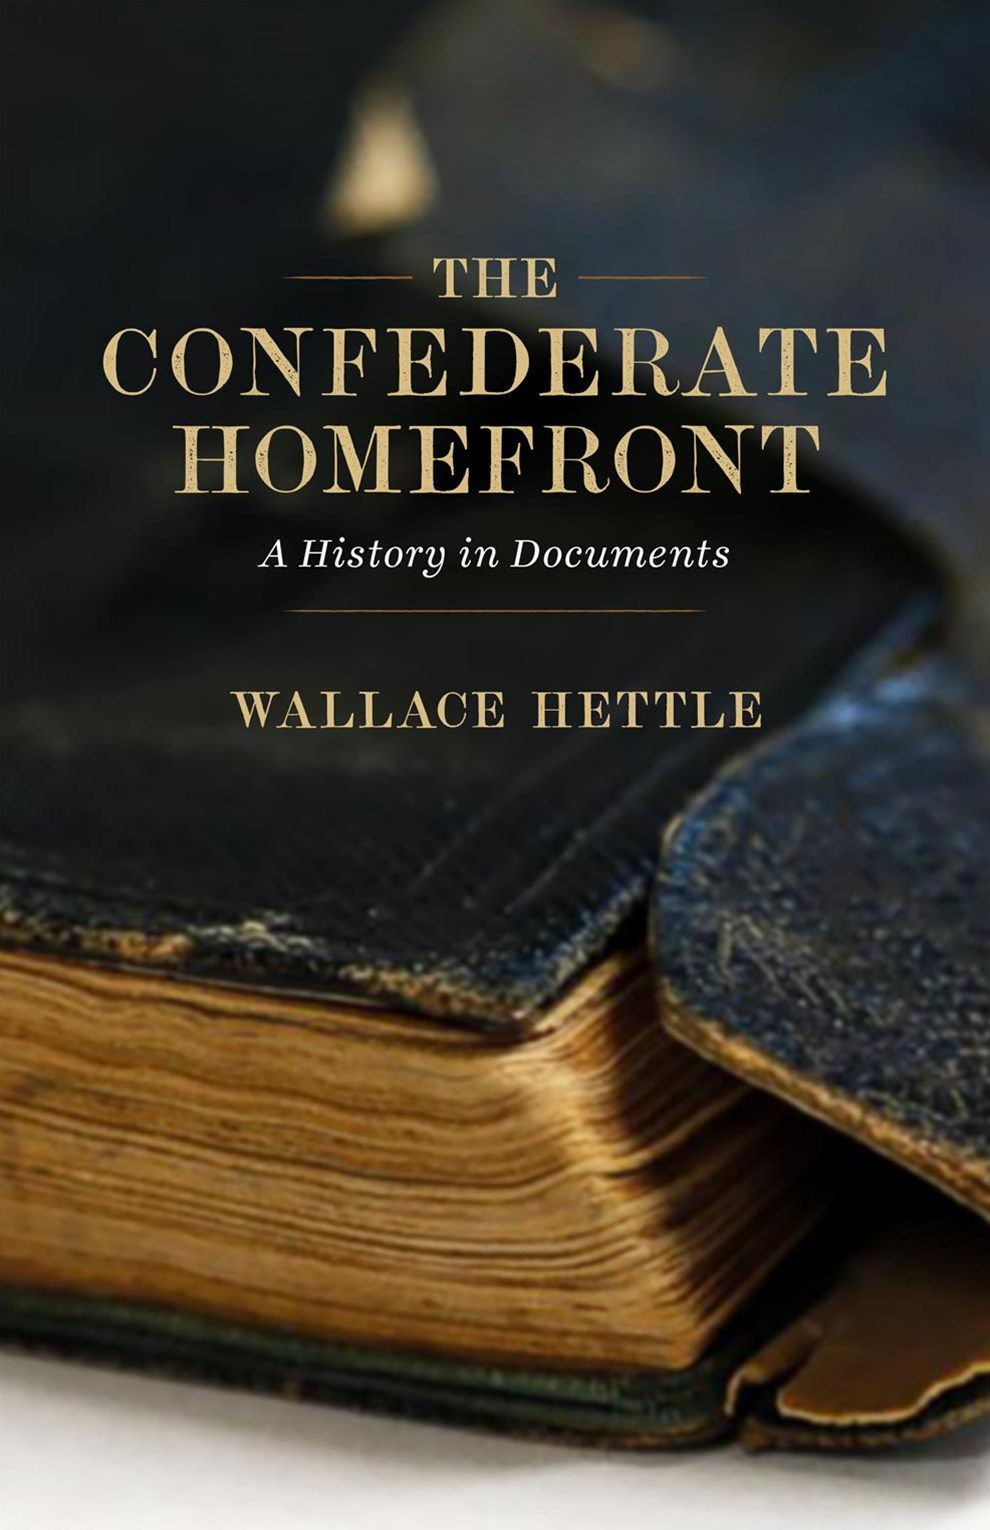 The Confederate Homefront